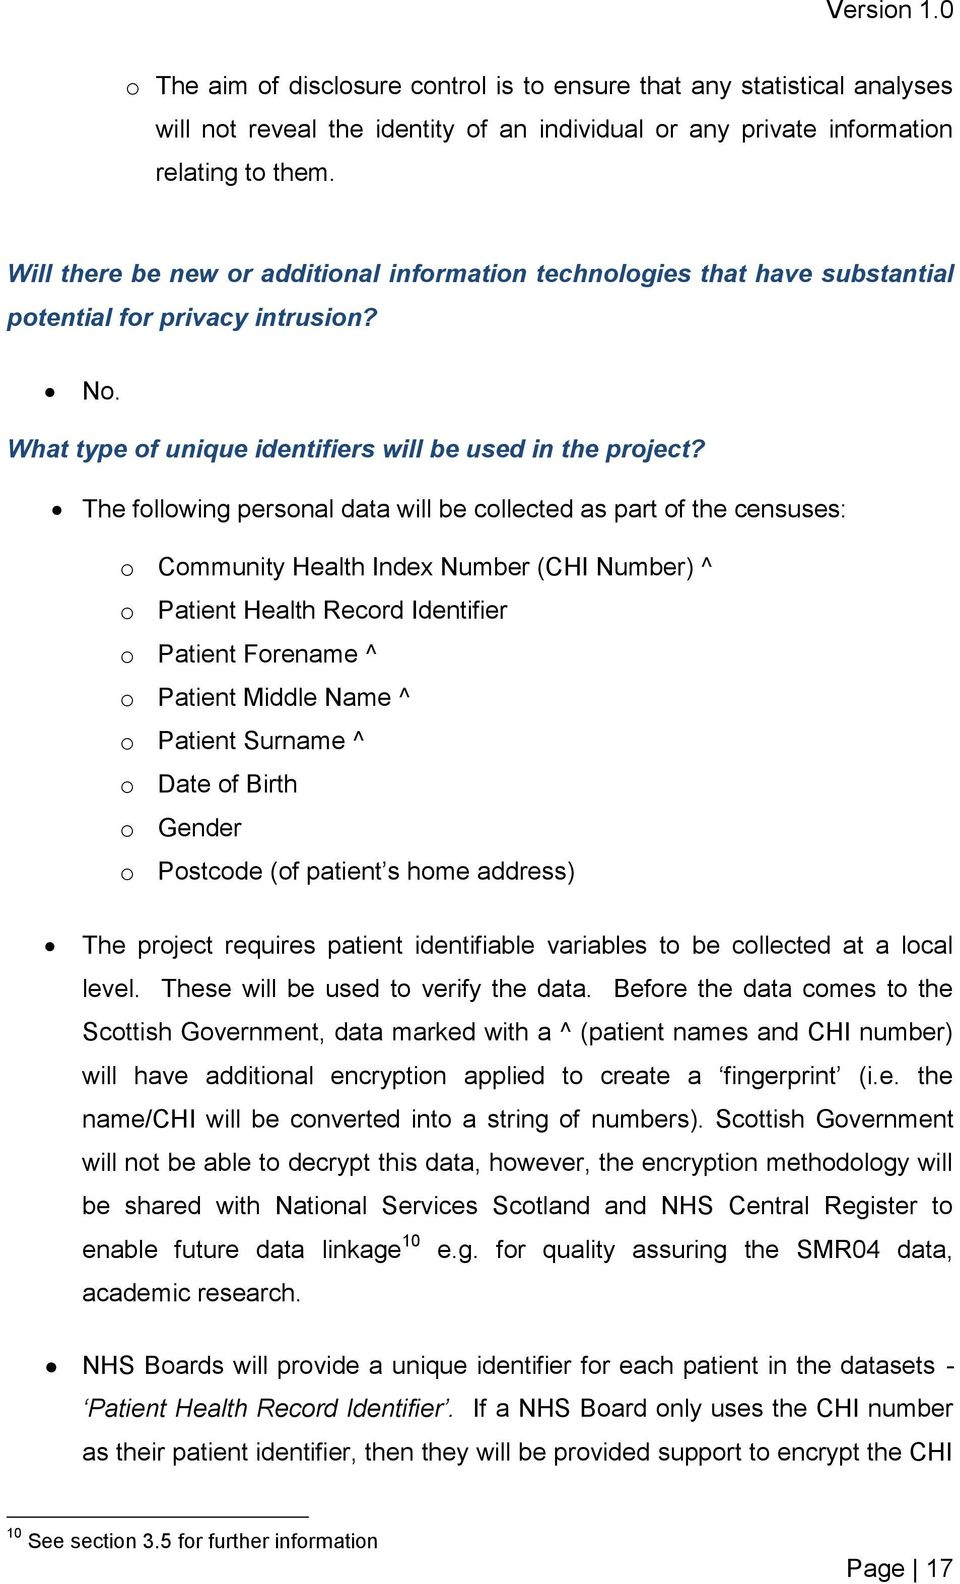 The following personal data will be collected as part of the censuses: o Community Health Index Number (CHI Number) ^ o Patient Health Record Identifier o Patient Forename ^ o Patient Middle Name ^ o